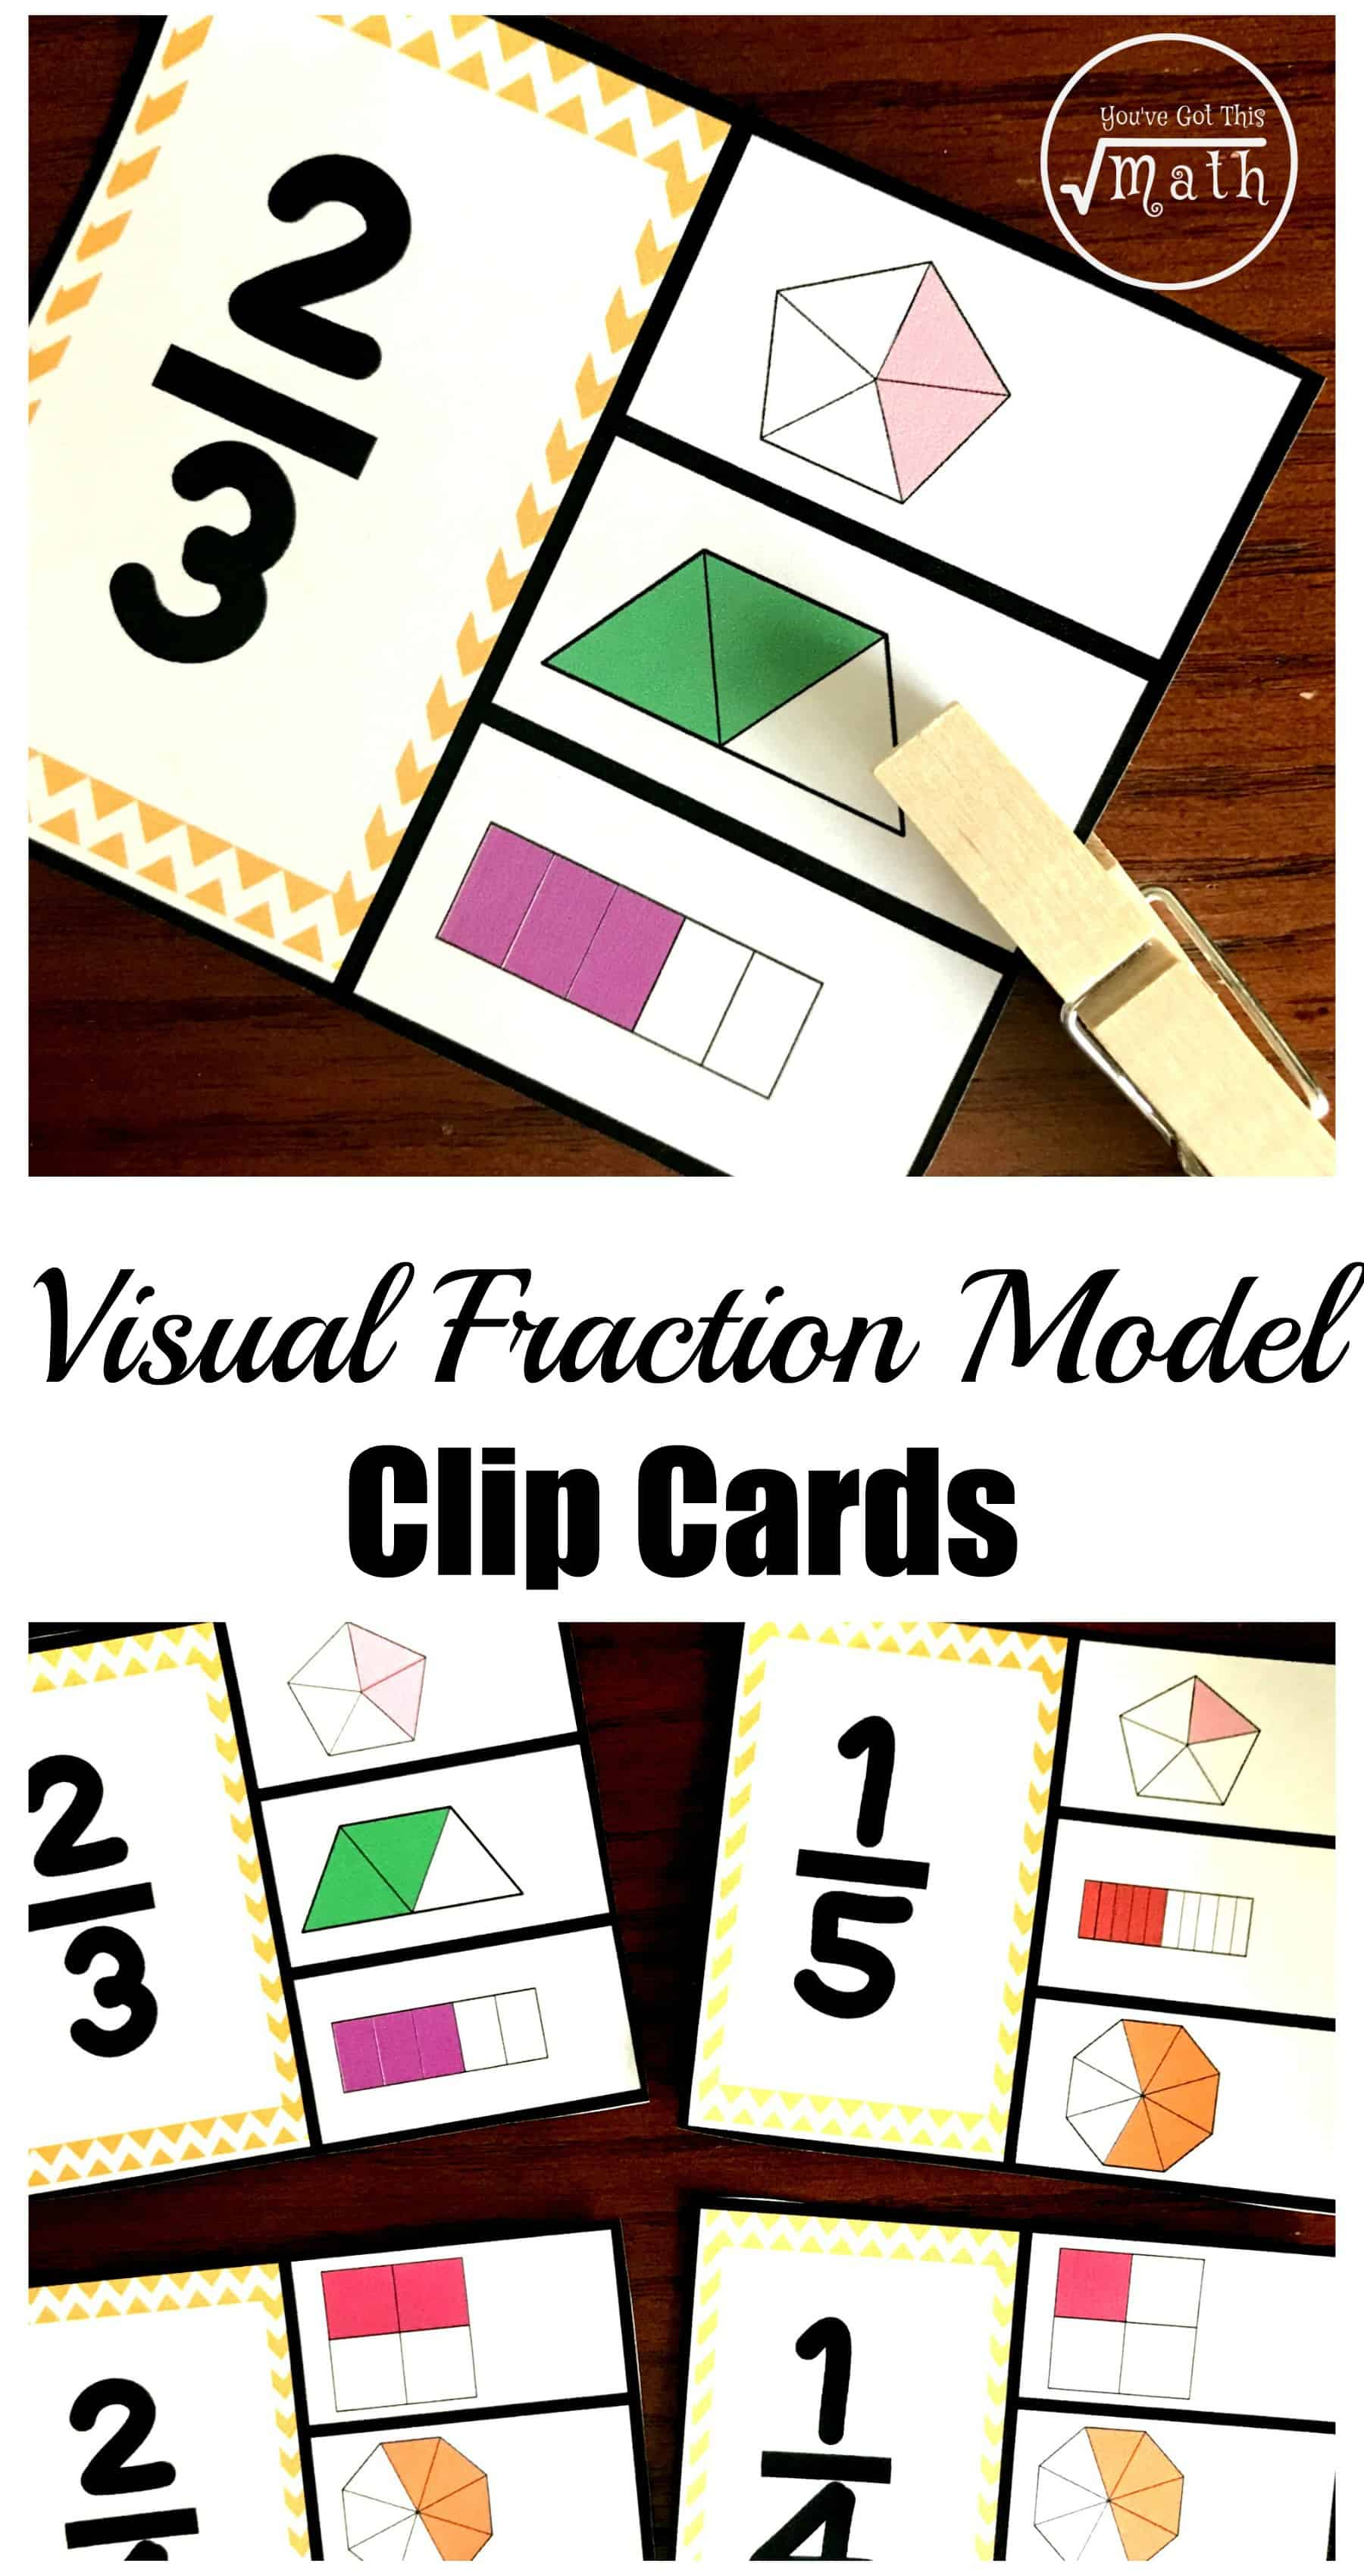 These free visual fraction model clip cards are a great way to assess children's knowledge of fractions, numerators, denominators, and their fraction sense.